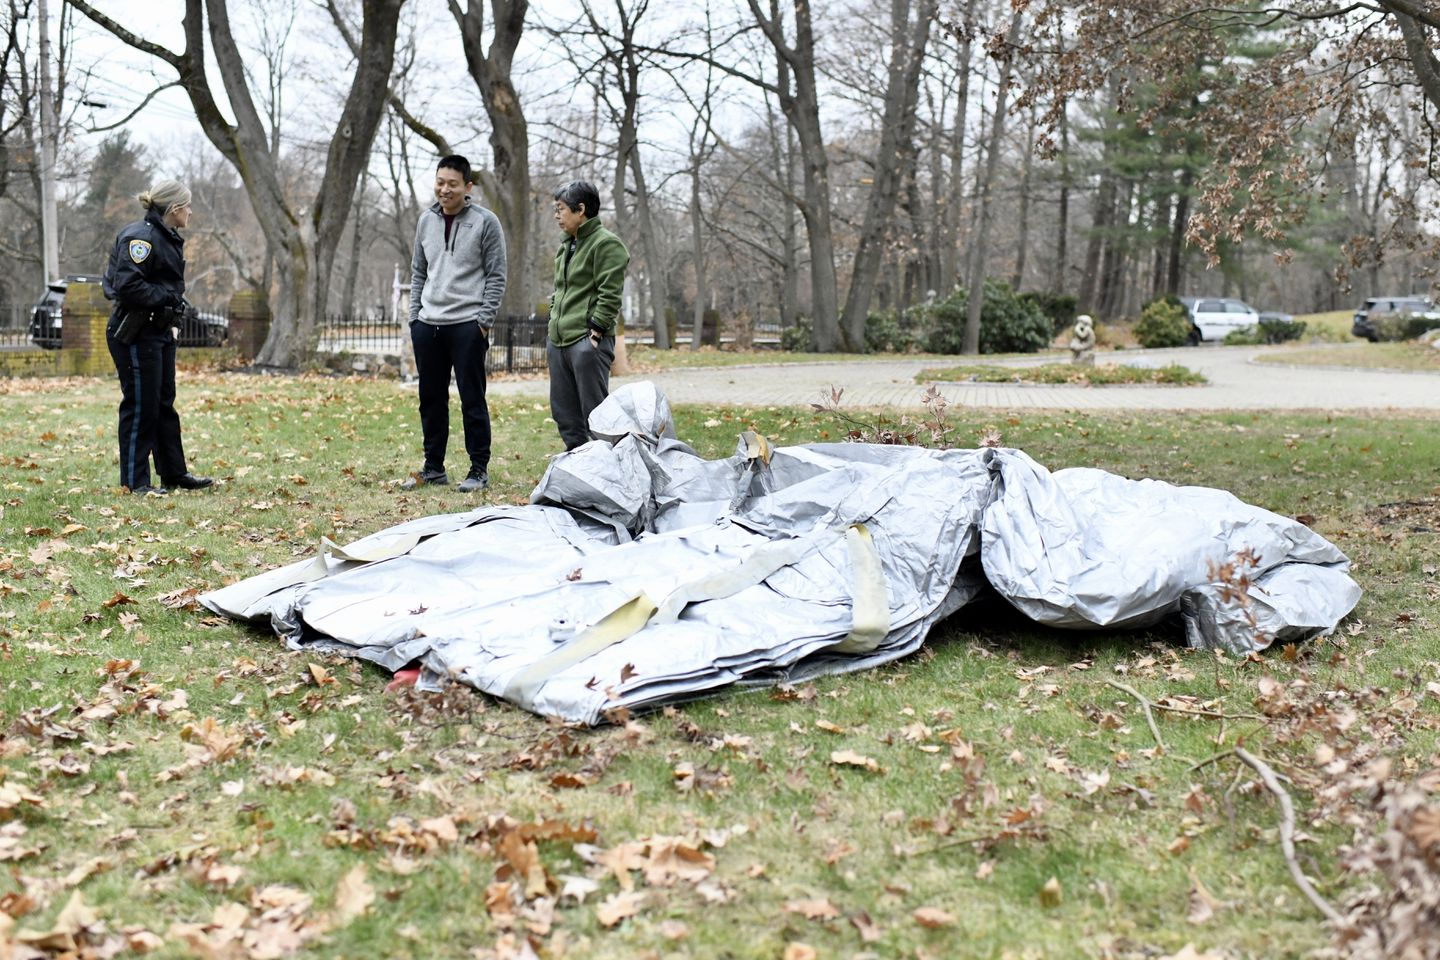 The slide landed in the front yard of a Milton home on Sunday, officials said.